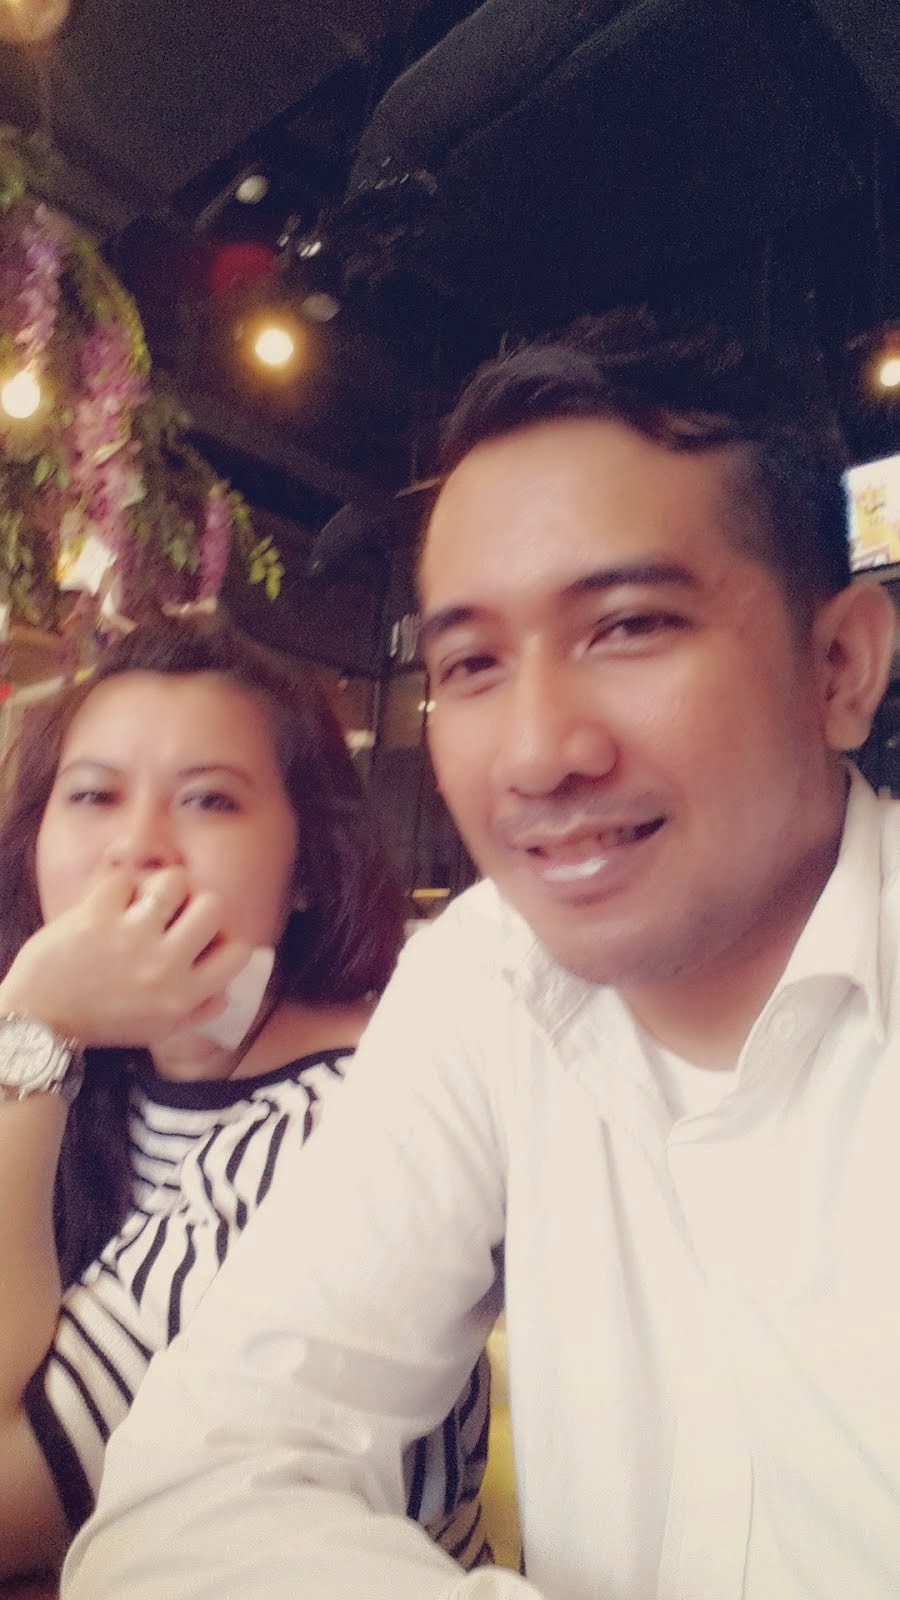 Me and my luvly wife